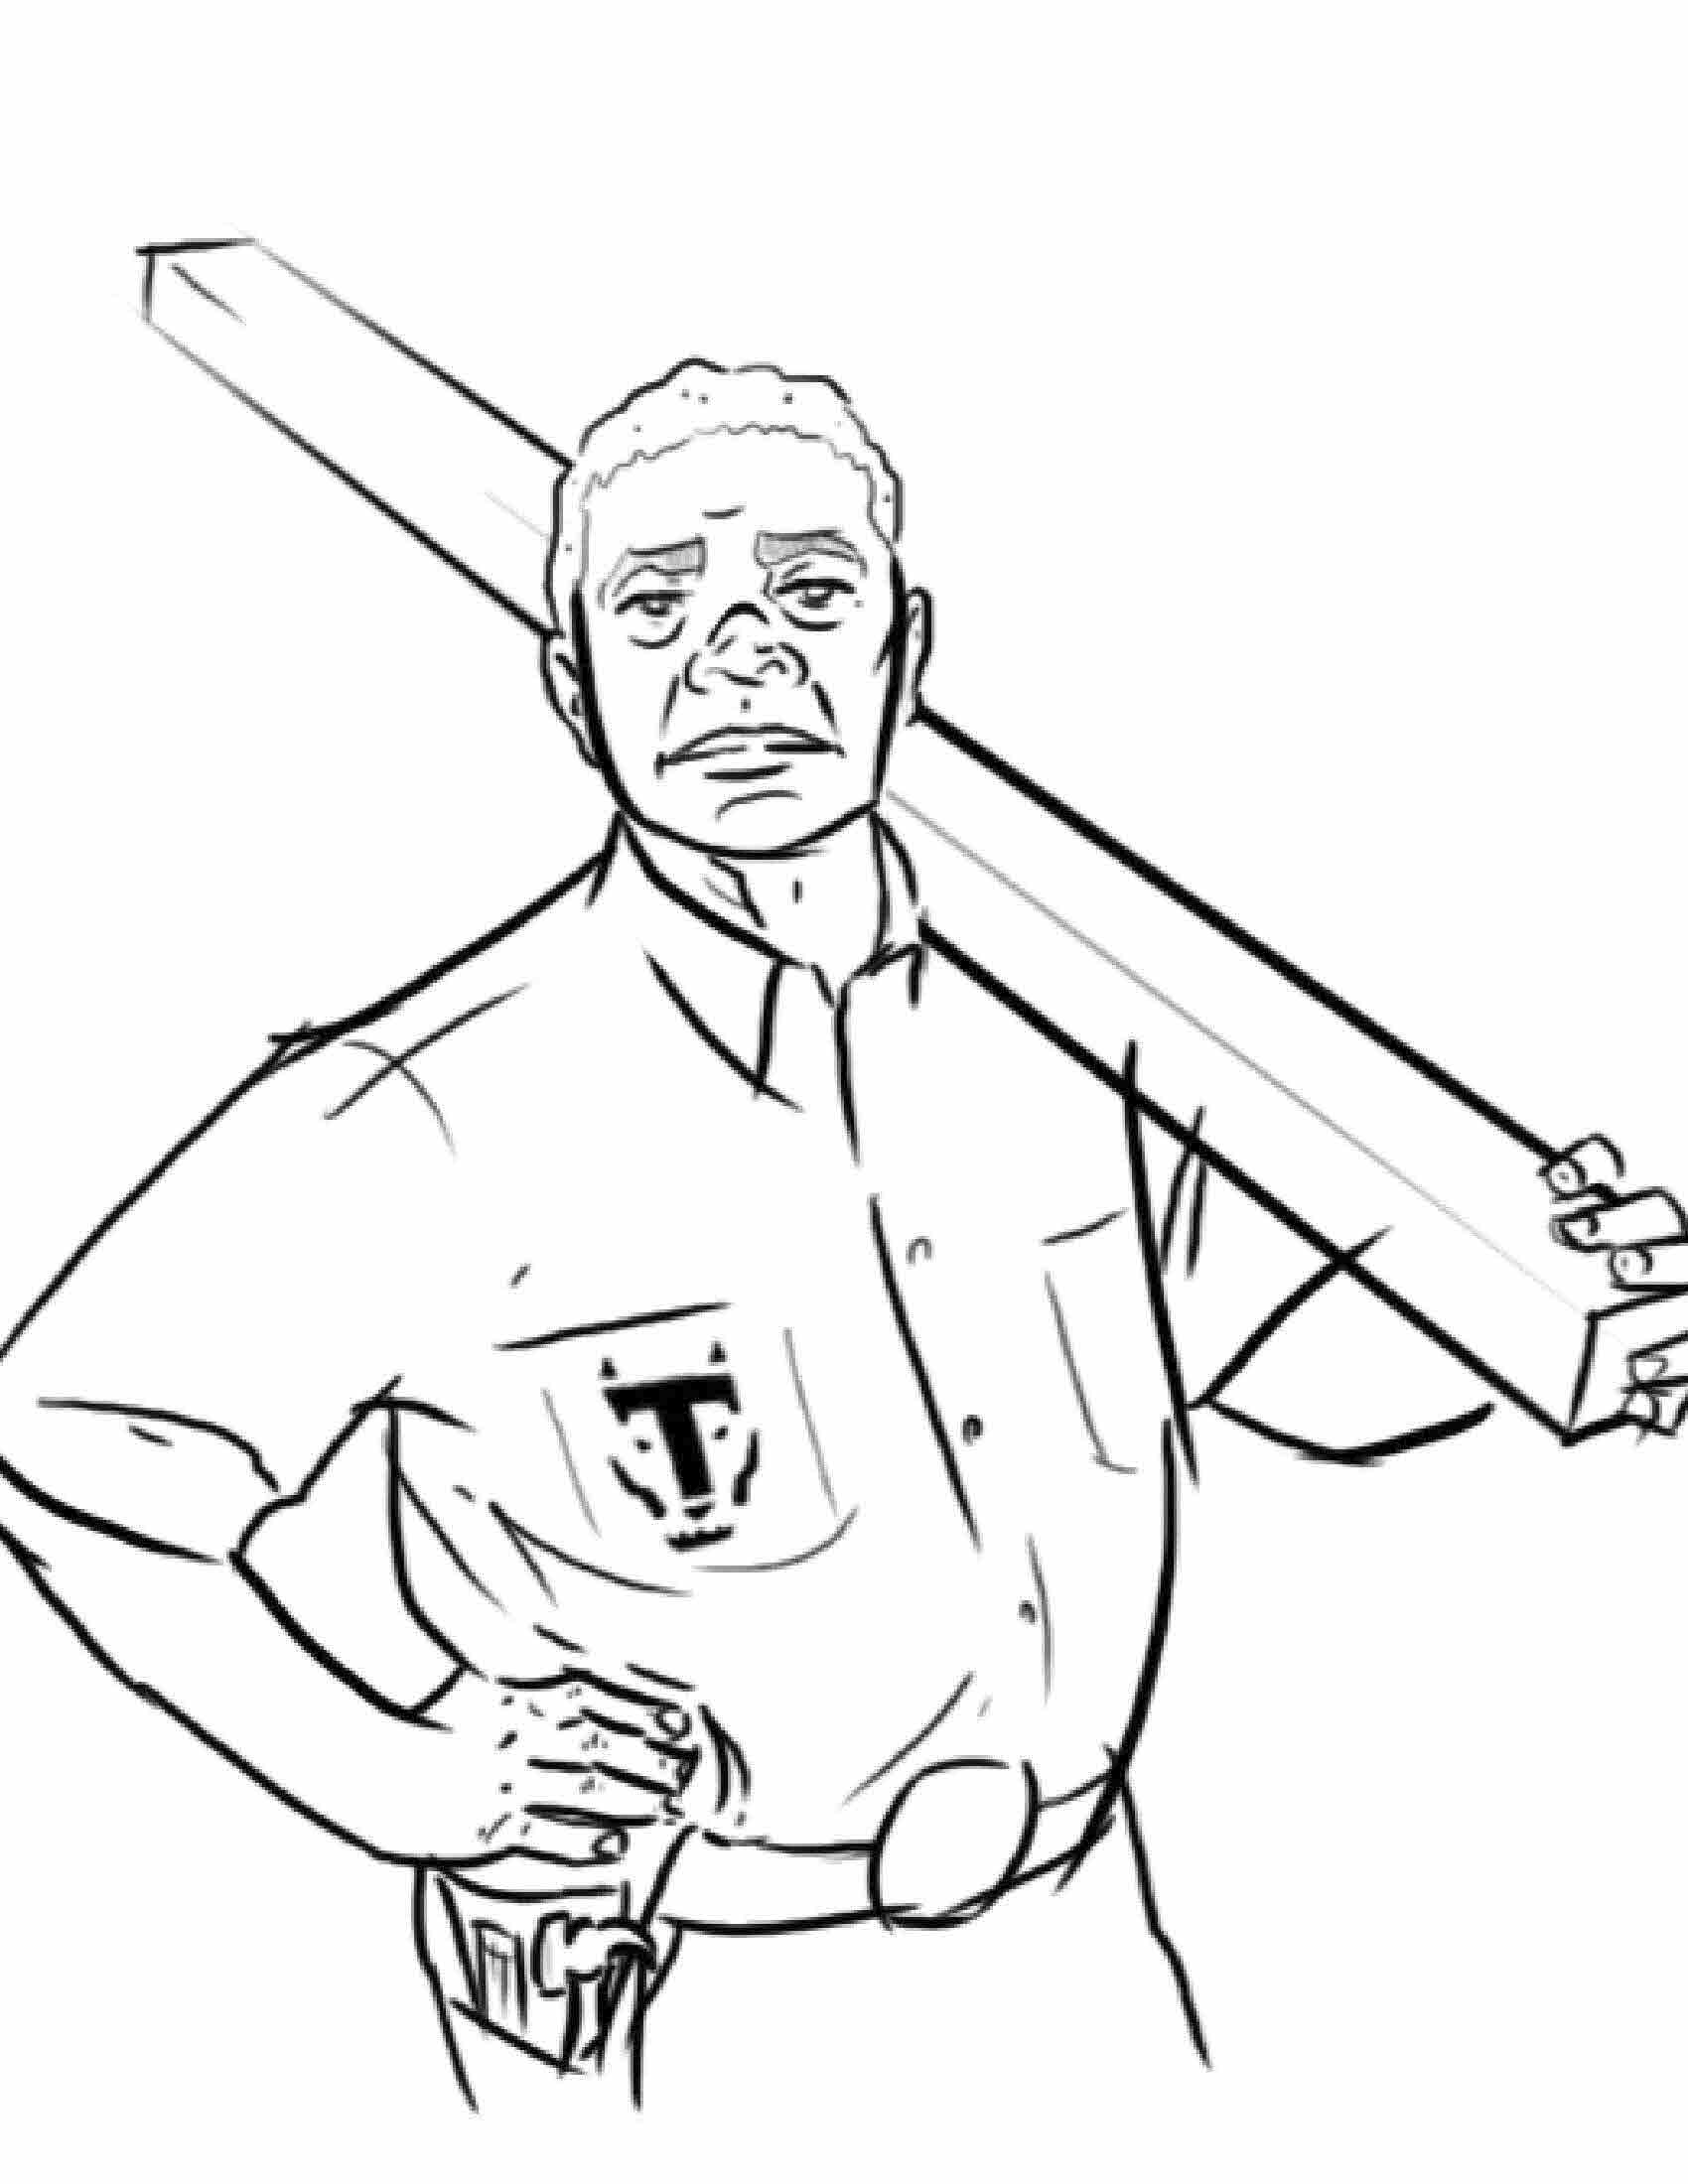 Cartoon Illustration of a man carrying a plank on his shoulder